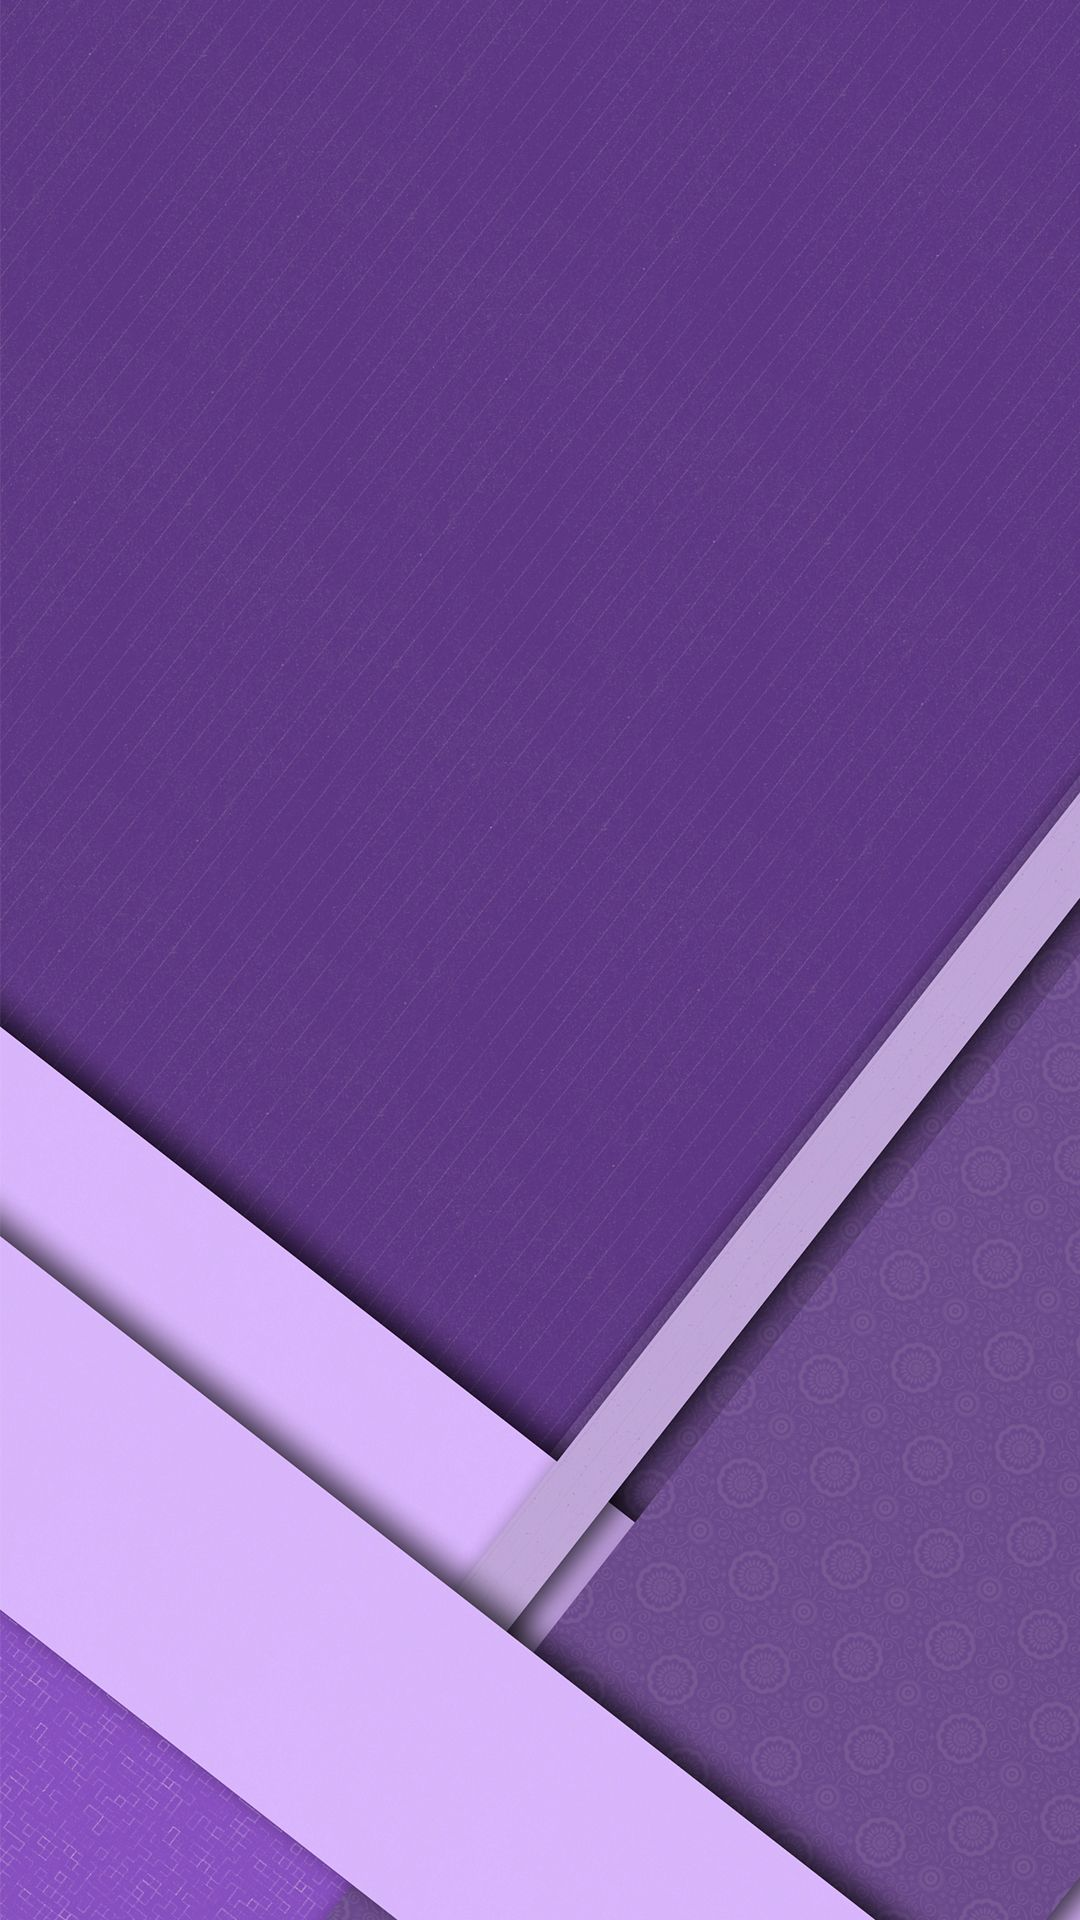 Modern Material Design Wallpapers And Abstract Background Images In High Resolution Geometric Wallpaper Iphone Geometric Wallpaper Purple Geometric Wallpaper